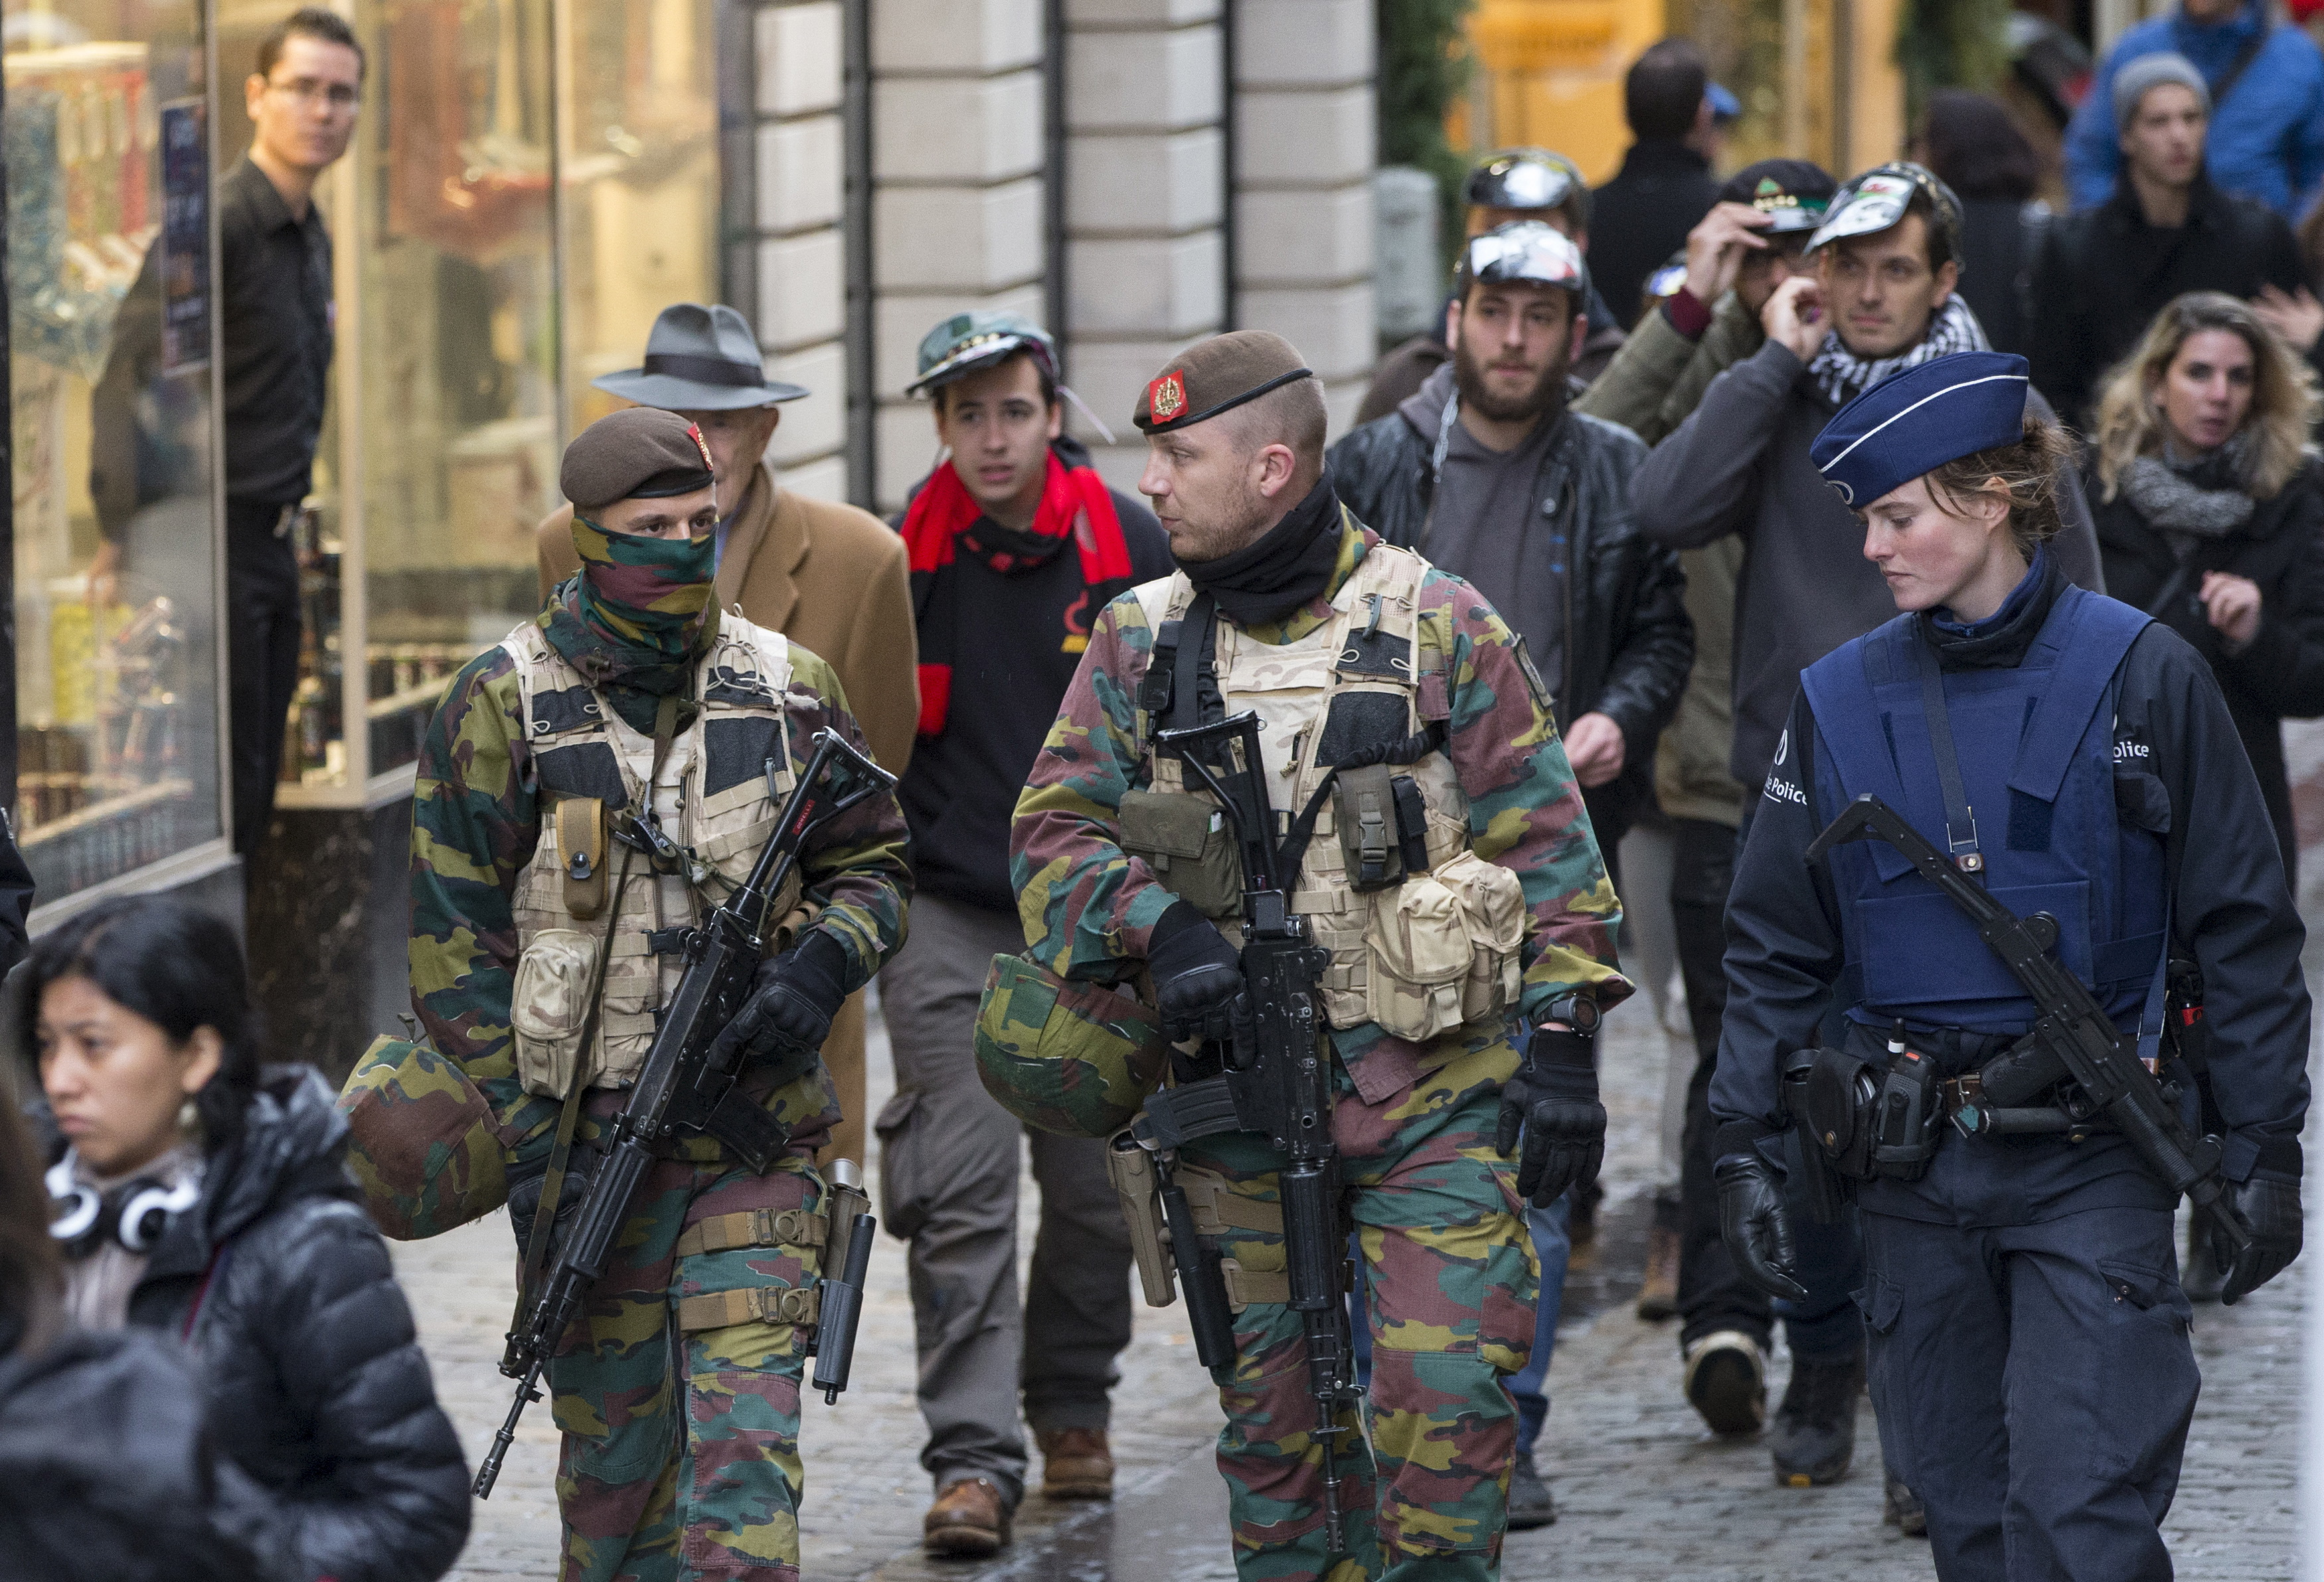 Belgian soldiers and police patrol on Brussels Grand Place after security was tightened in Belgium following the fatal attacks in Paris last week, in Brussels, Belgium, Nov. 20, 2015.